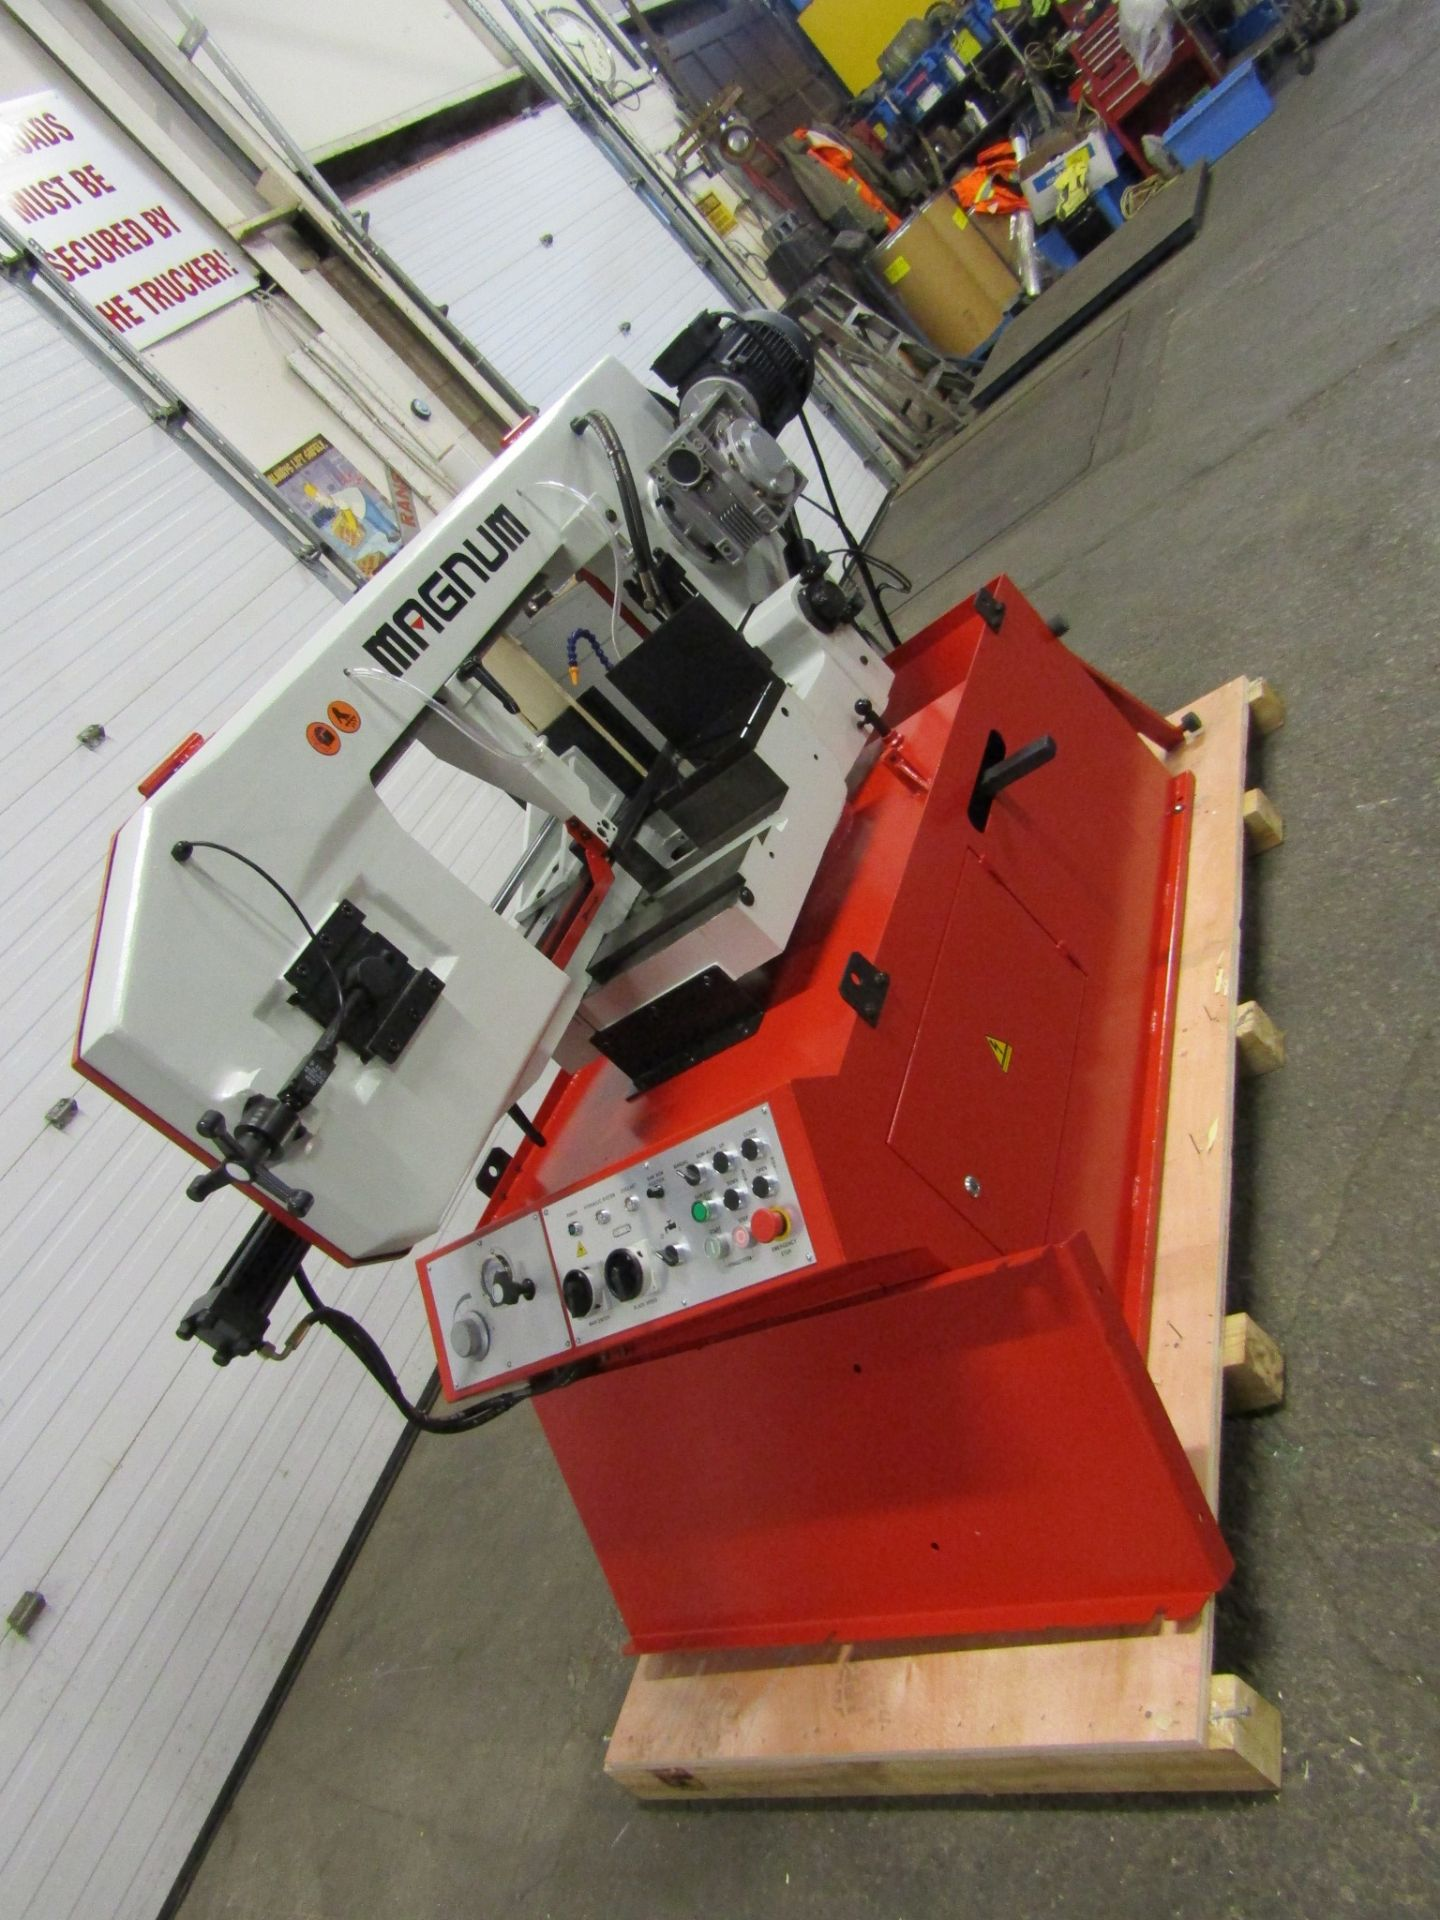 Magnum BS-1616A Horizontal Band Saw - 16 X 16 inch CUTTING CAPACITY - MINT & UNUSED 220V - Image 4 of 4